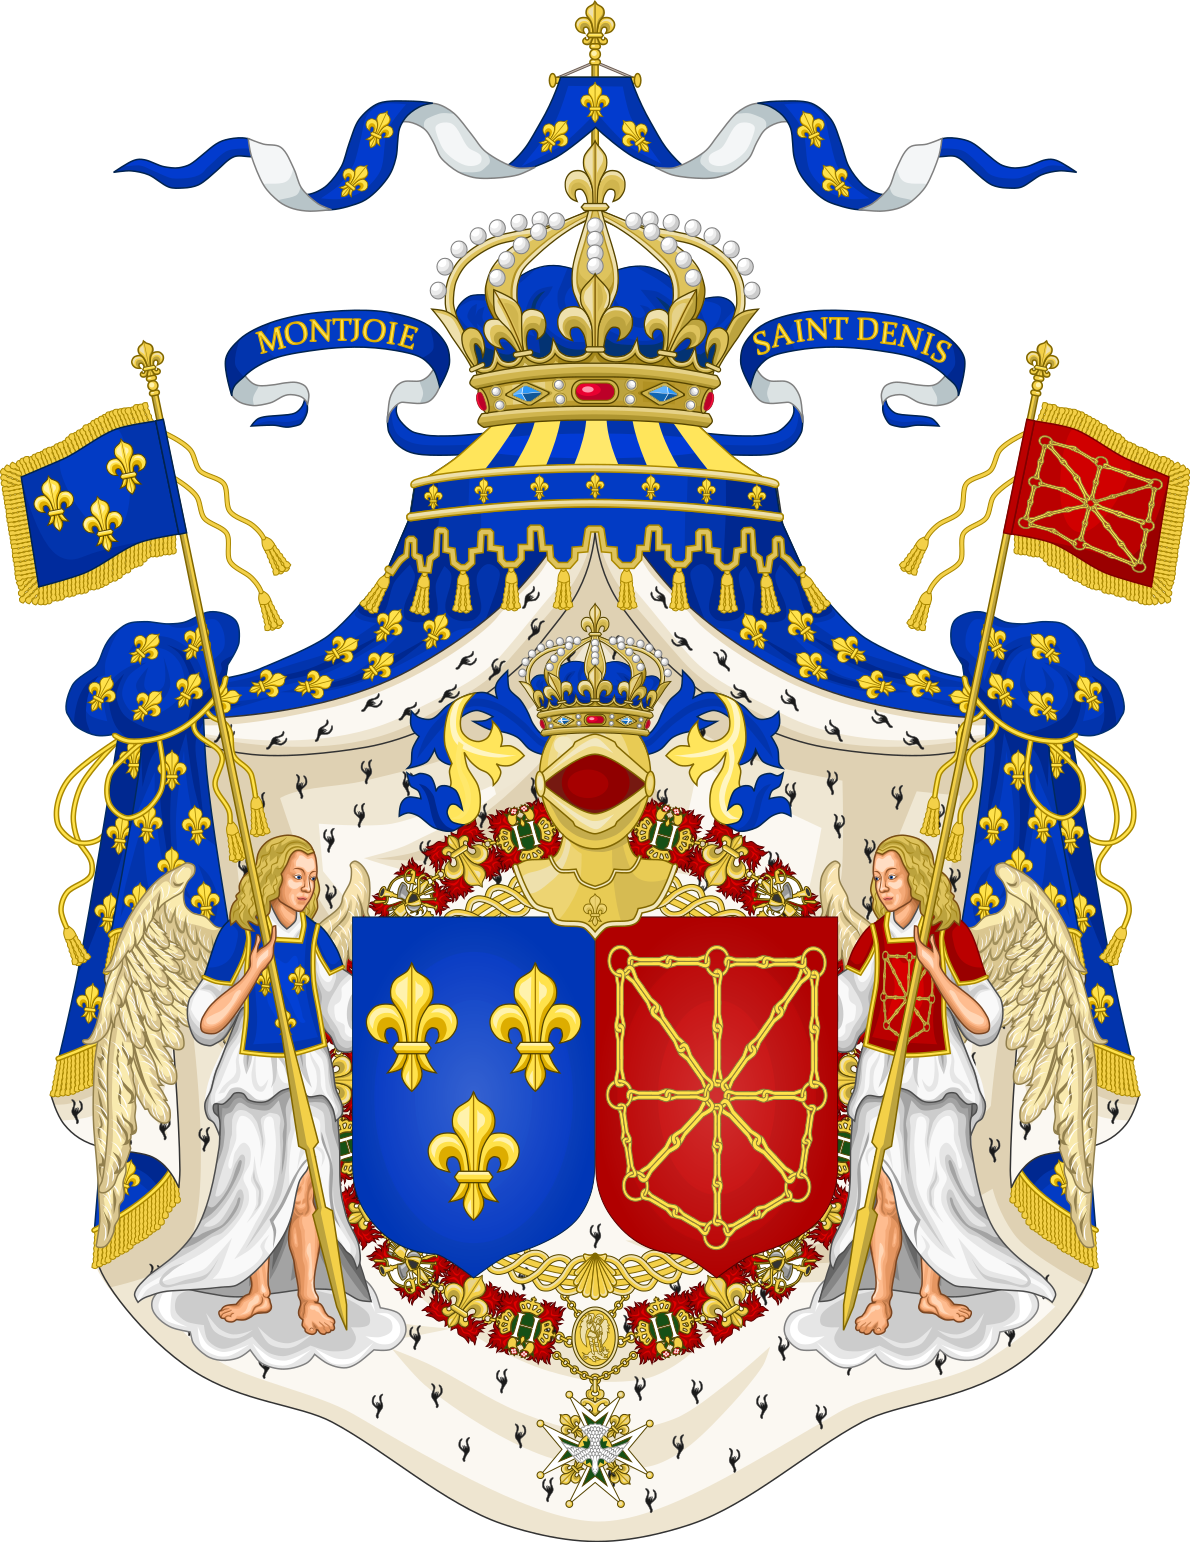 Grand Royal Coat of Arms of the Kingdom of France and Navarre